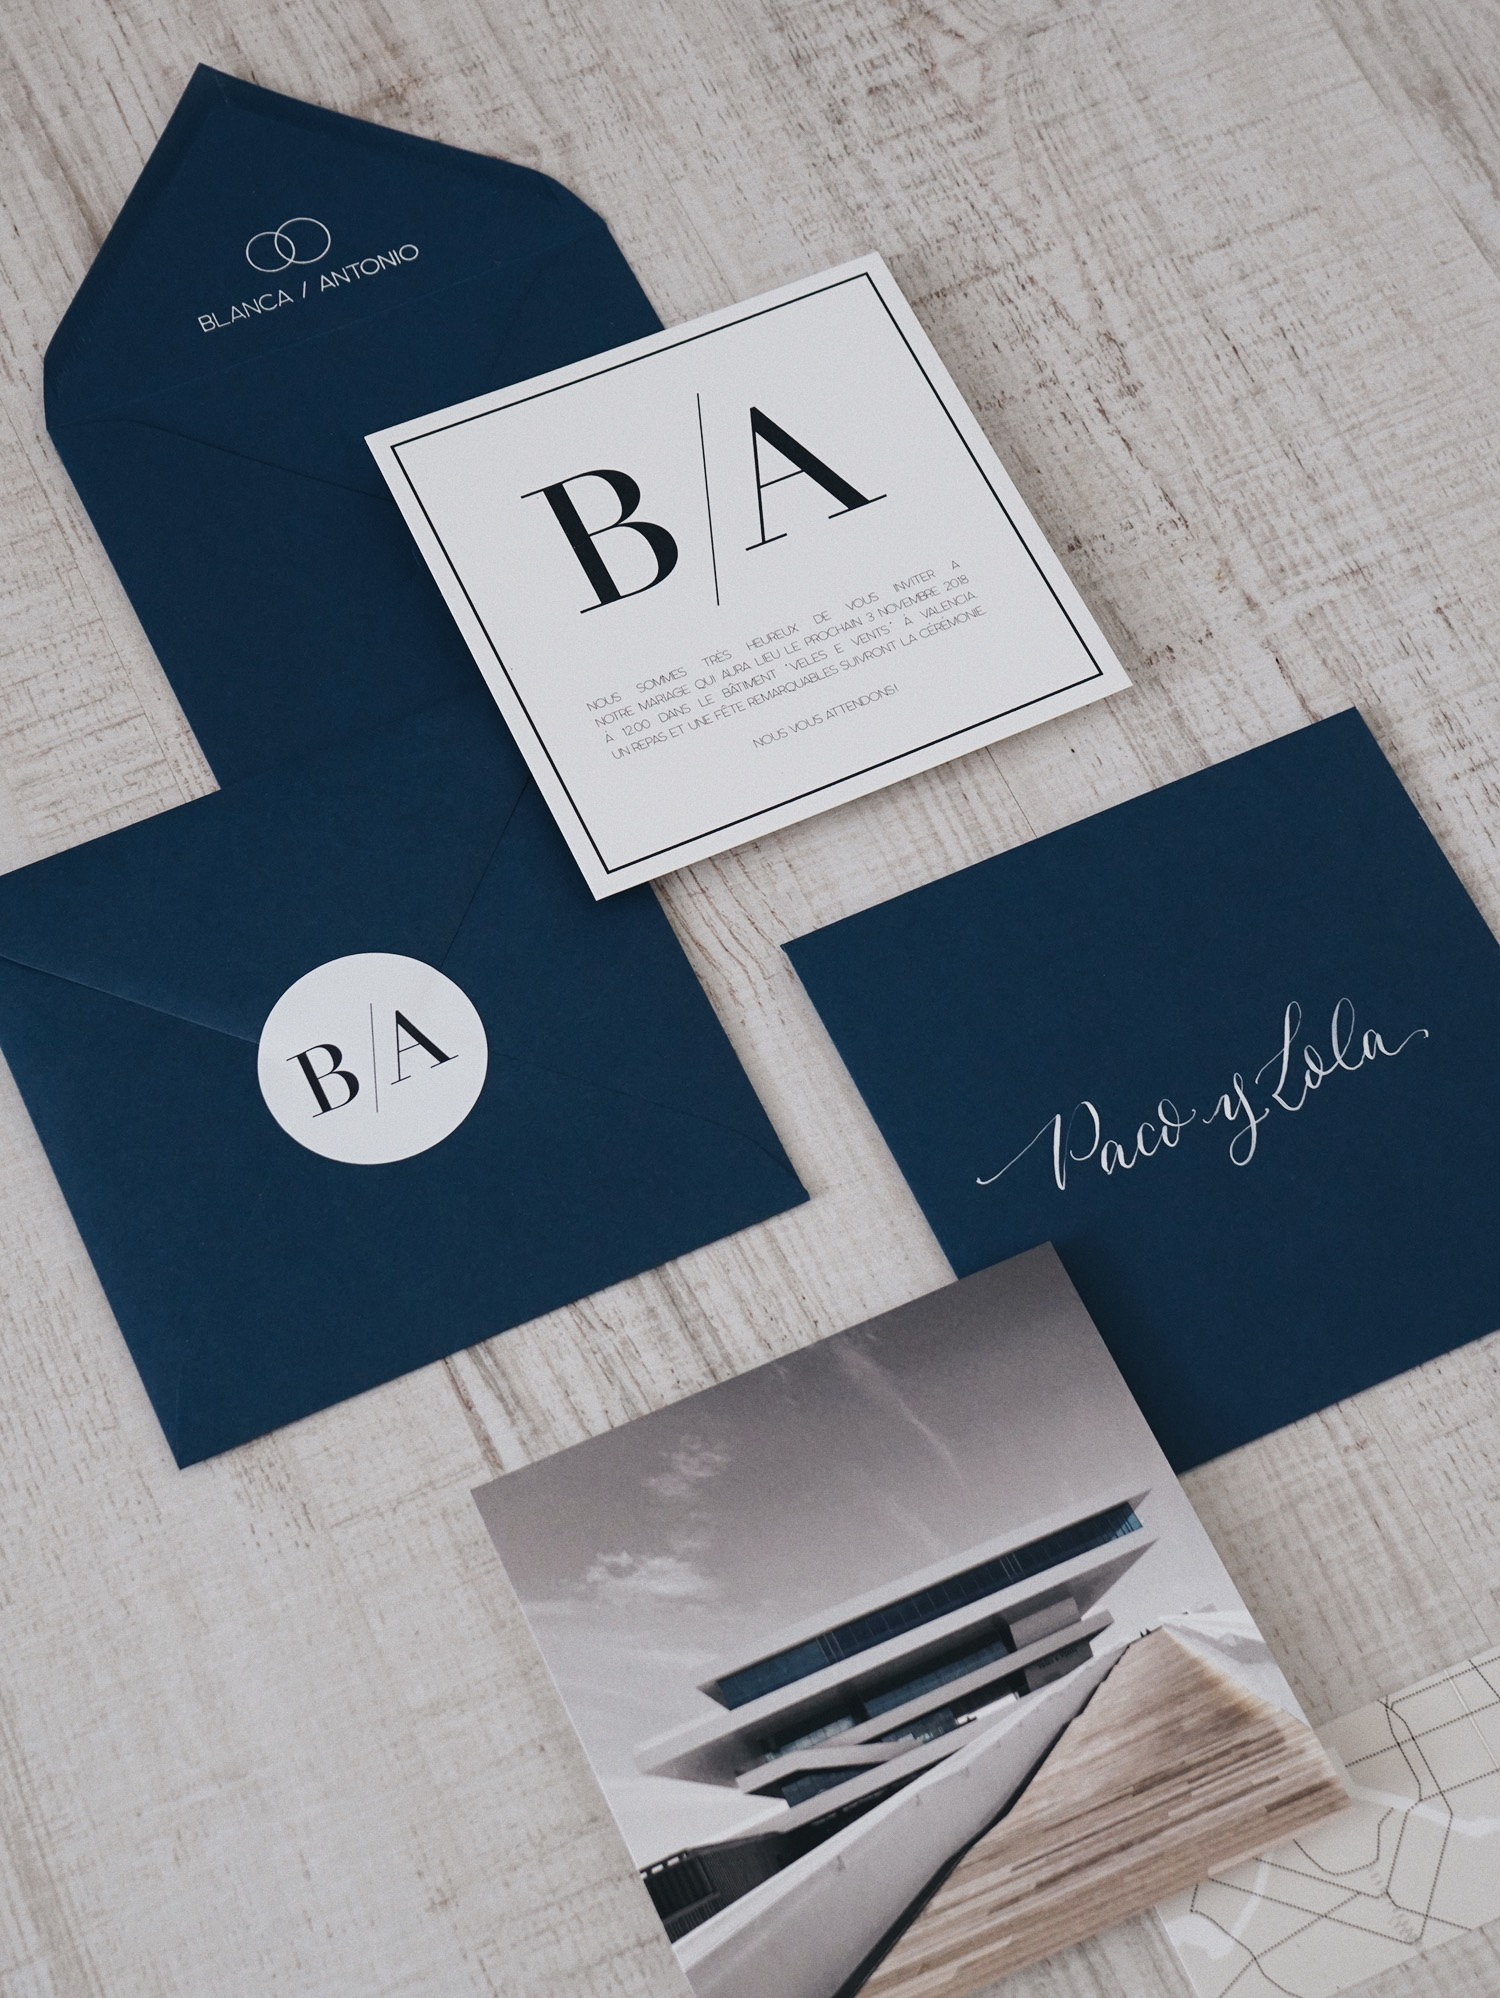 B+A INVITATION-18425-macarenagea